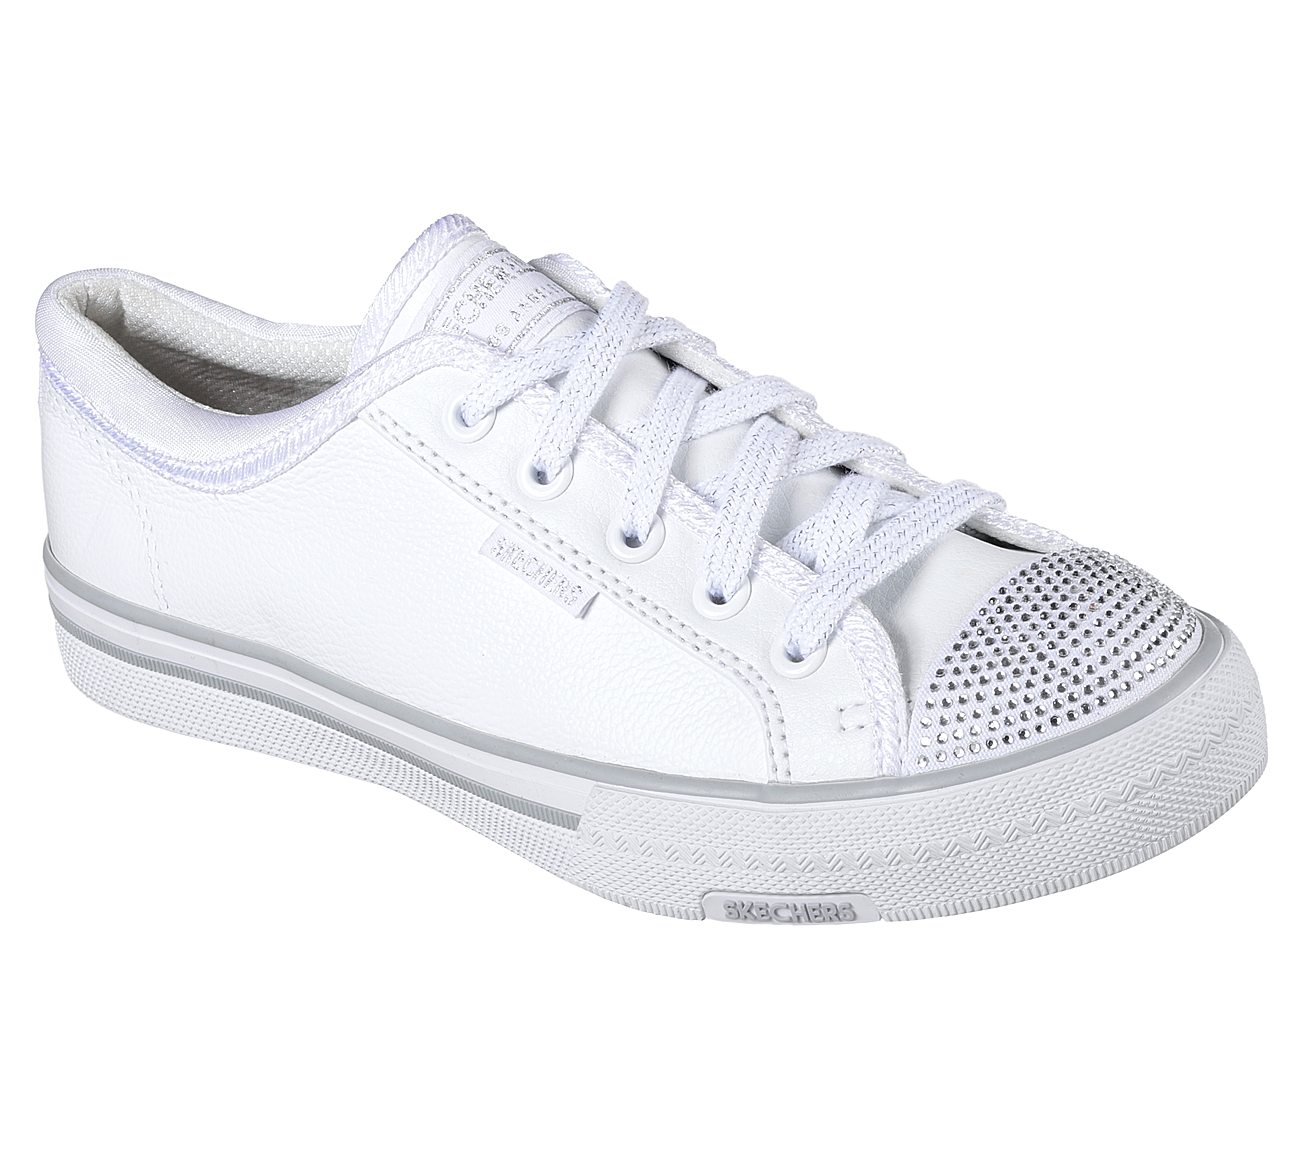 f6cc2cdb2c40 Buy SKECHERS Utopia - Young Forever Low SKECHER Street Shoes only  41.00